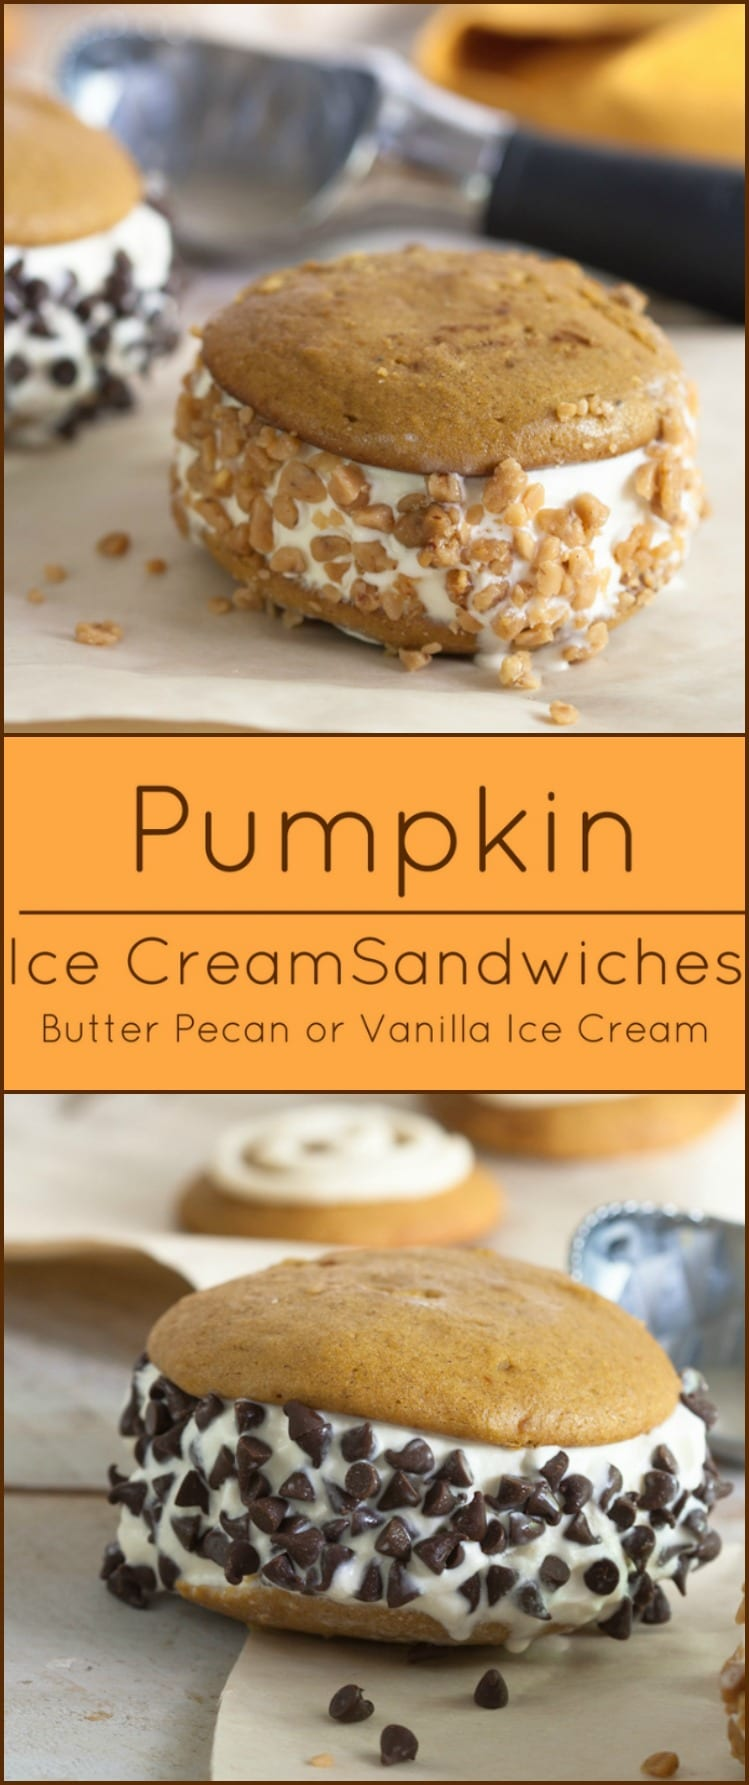 Pumpkin Ice Cream Sandwiches with butter pecan ice cream and English toffee bits or vanilla with chocolate chips.